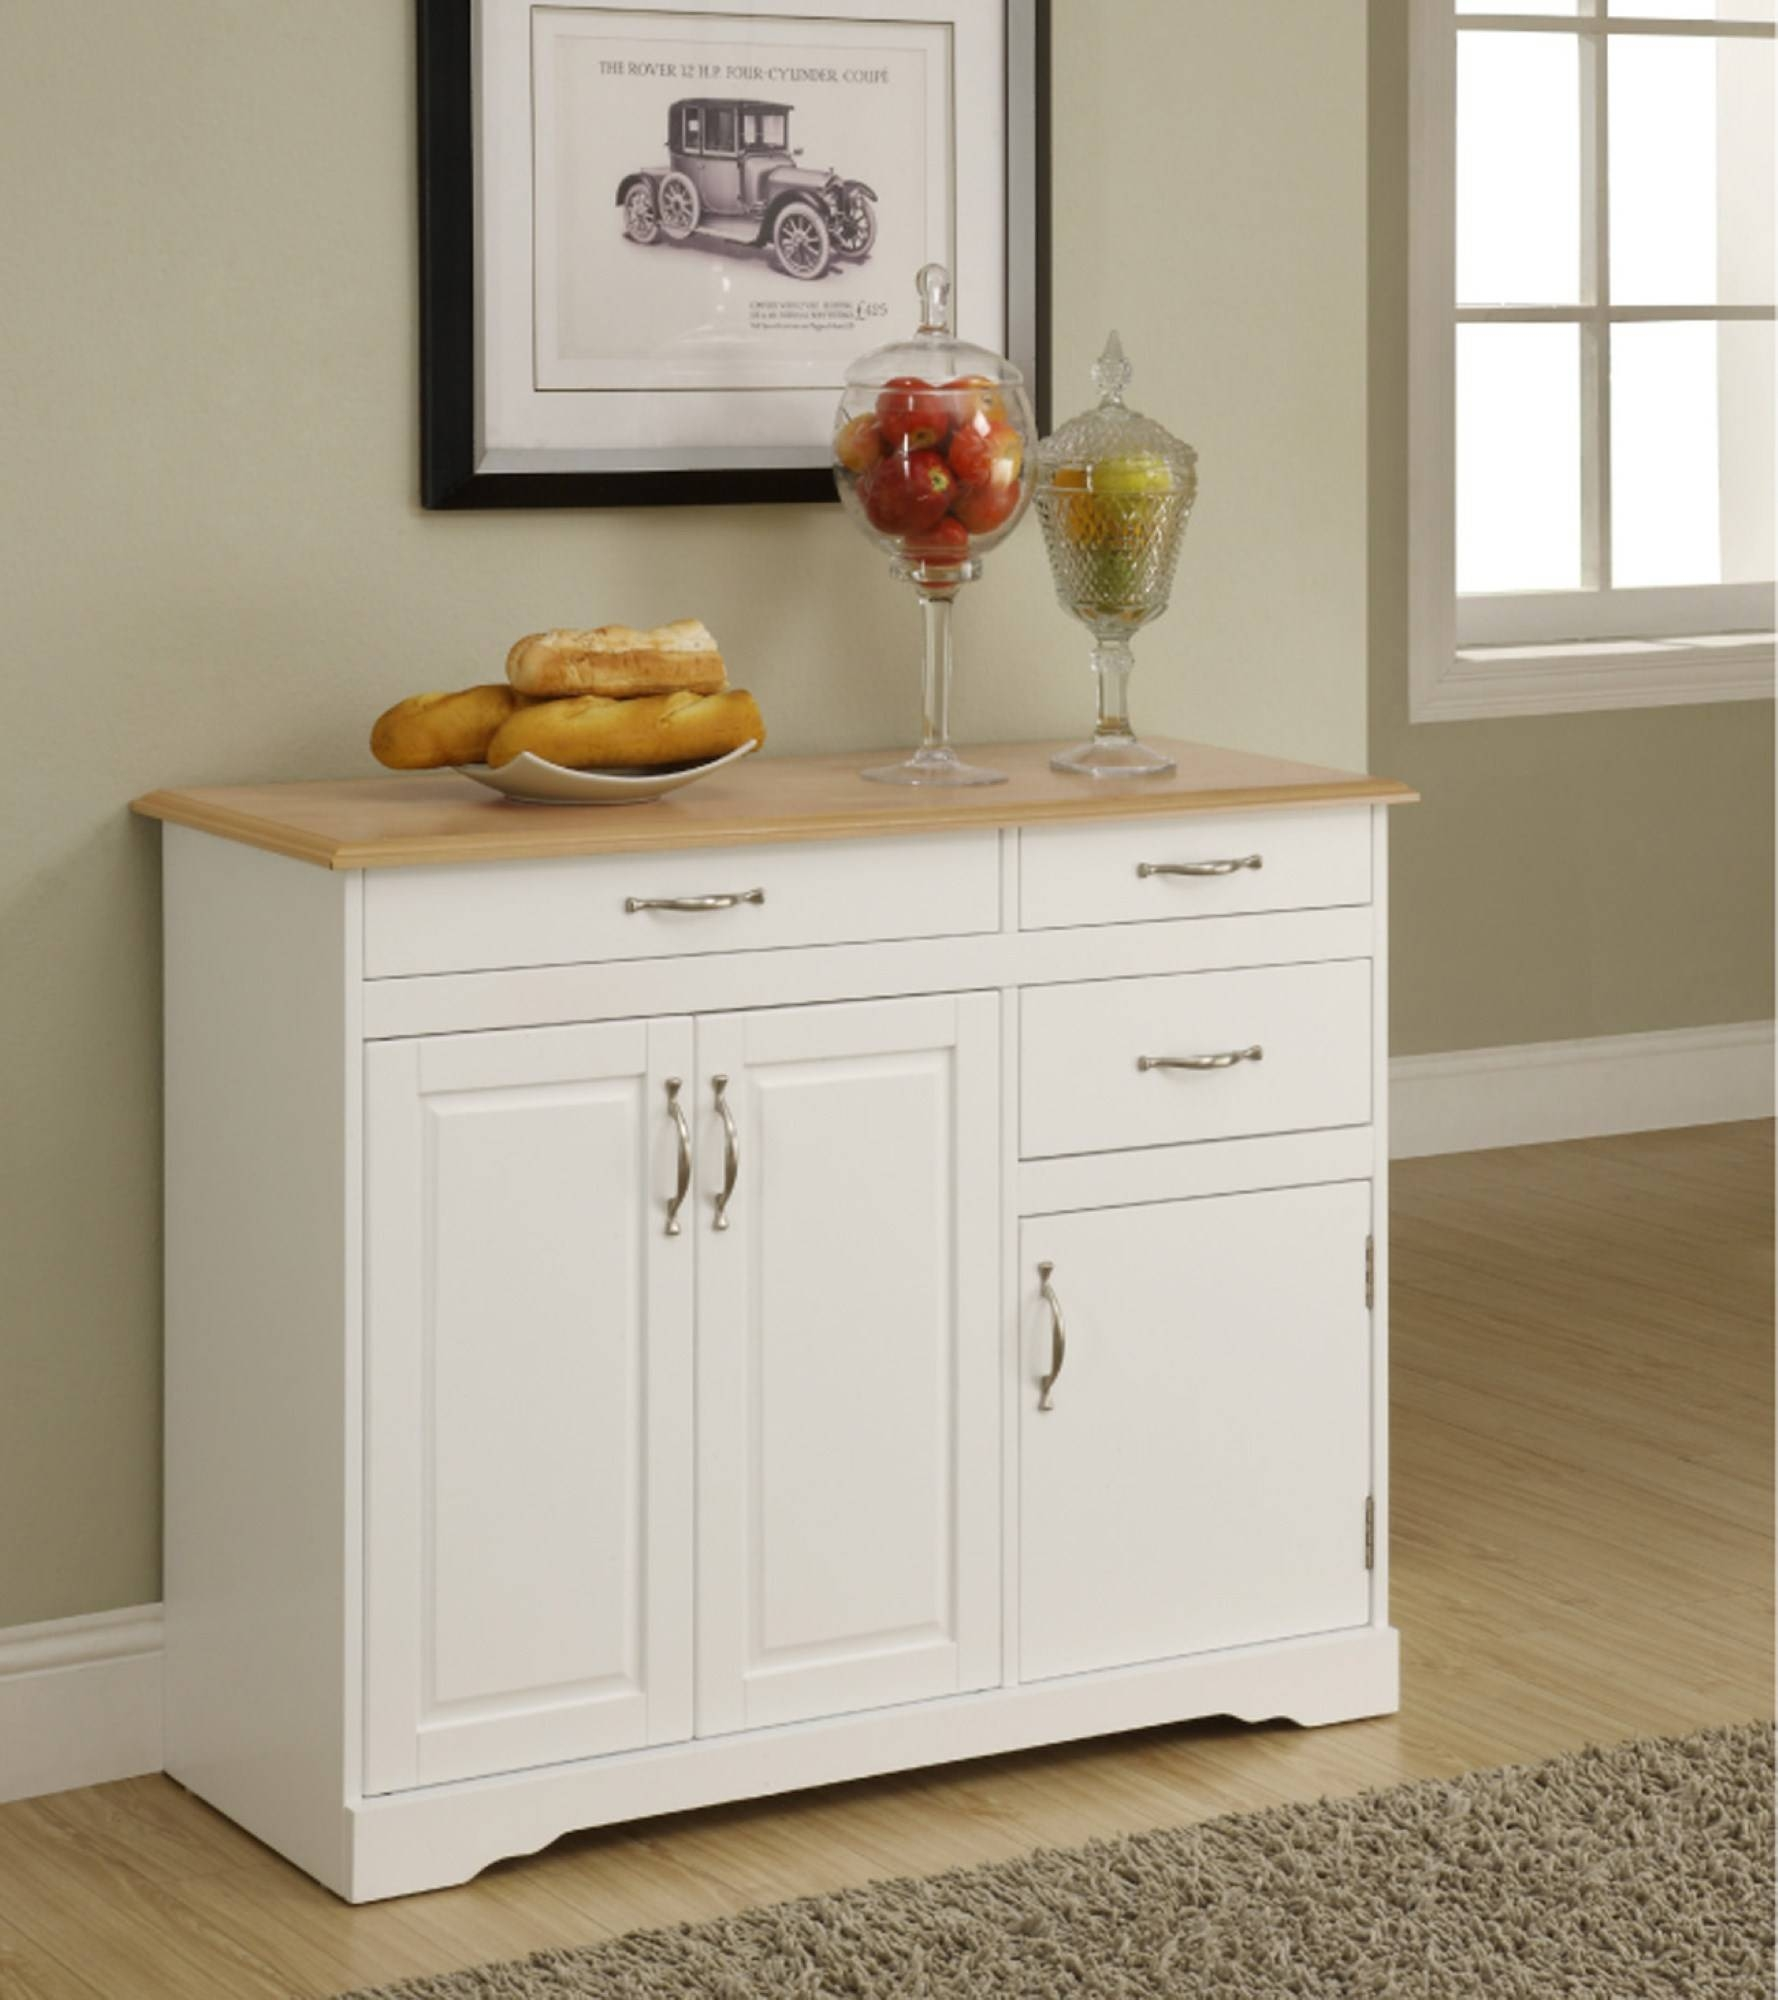 Furniture: Fashionable Stylish Buffets And Sideboards For Home Throughout Stylish Kitchen Sideboards And Buffets (View 3 of 15)